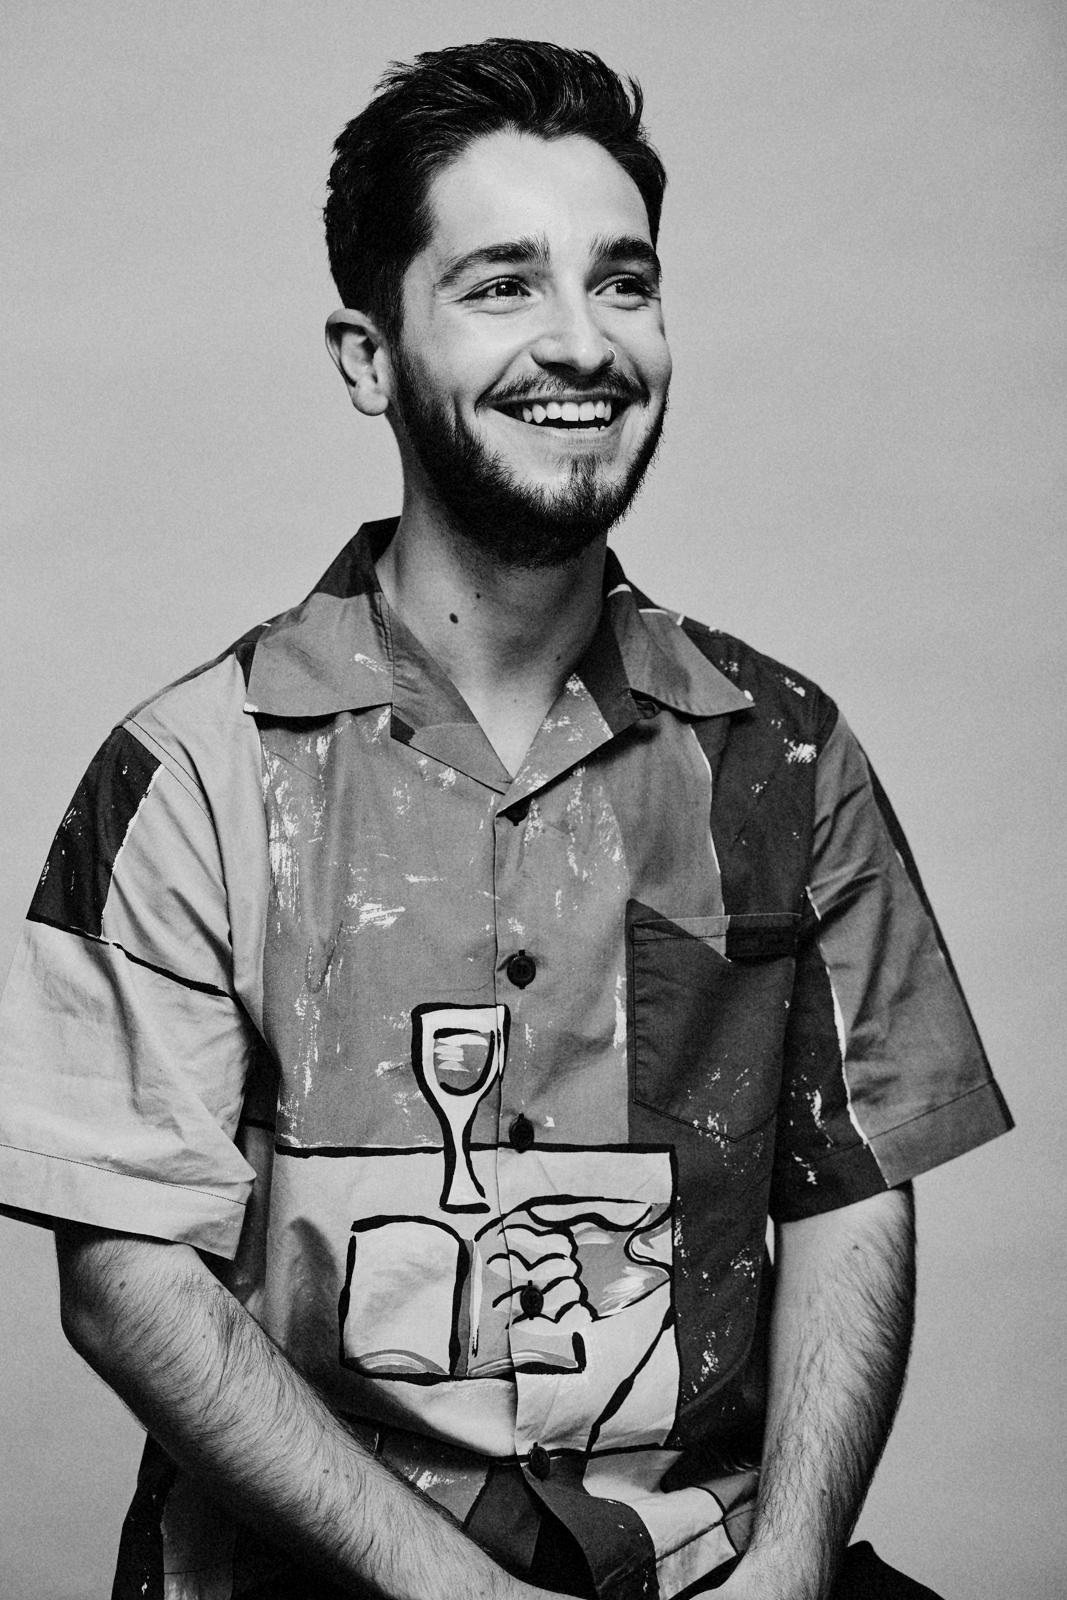 Artist Robson Stannard portrayed in black and white, wearing an eclectic patterned shirt and smiling off camera.